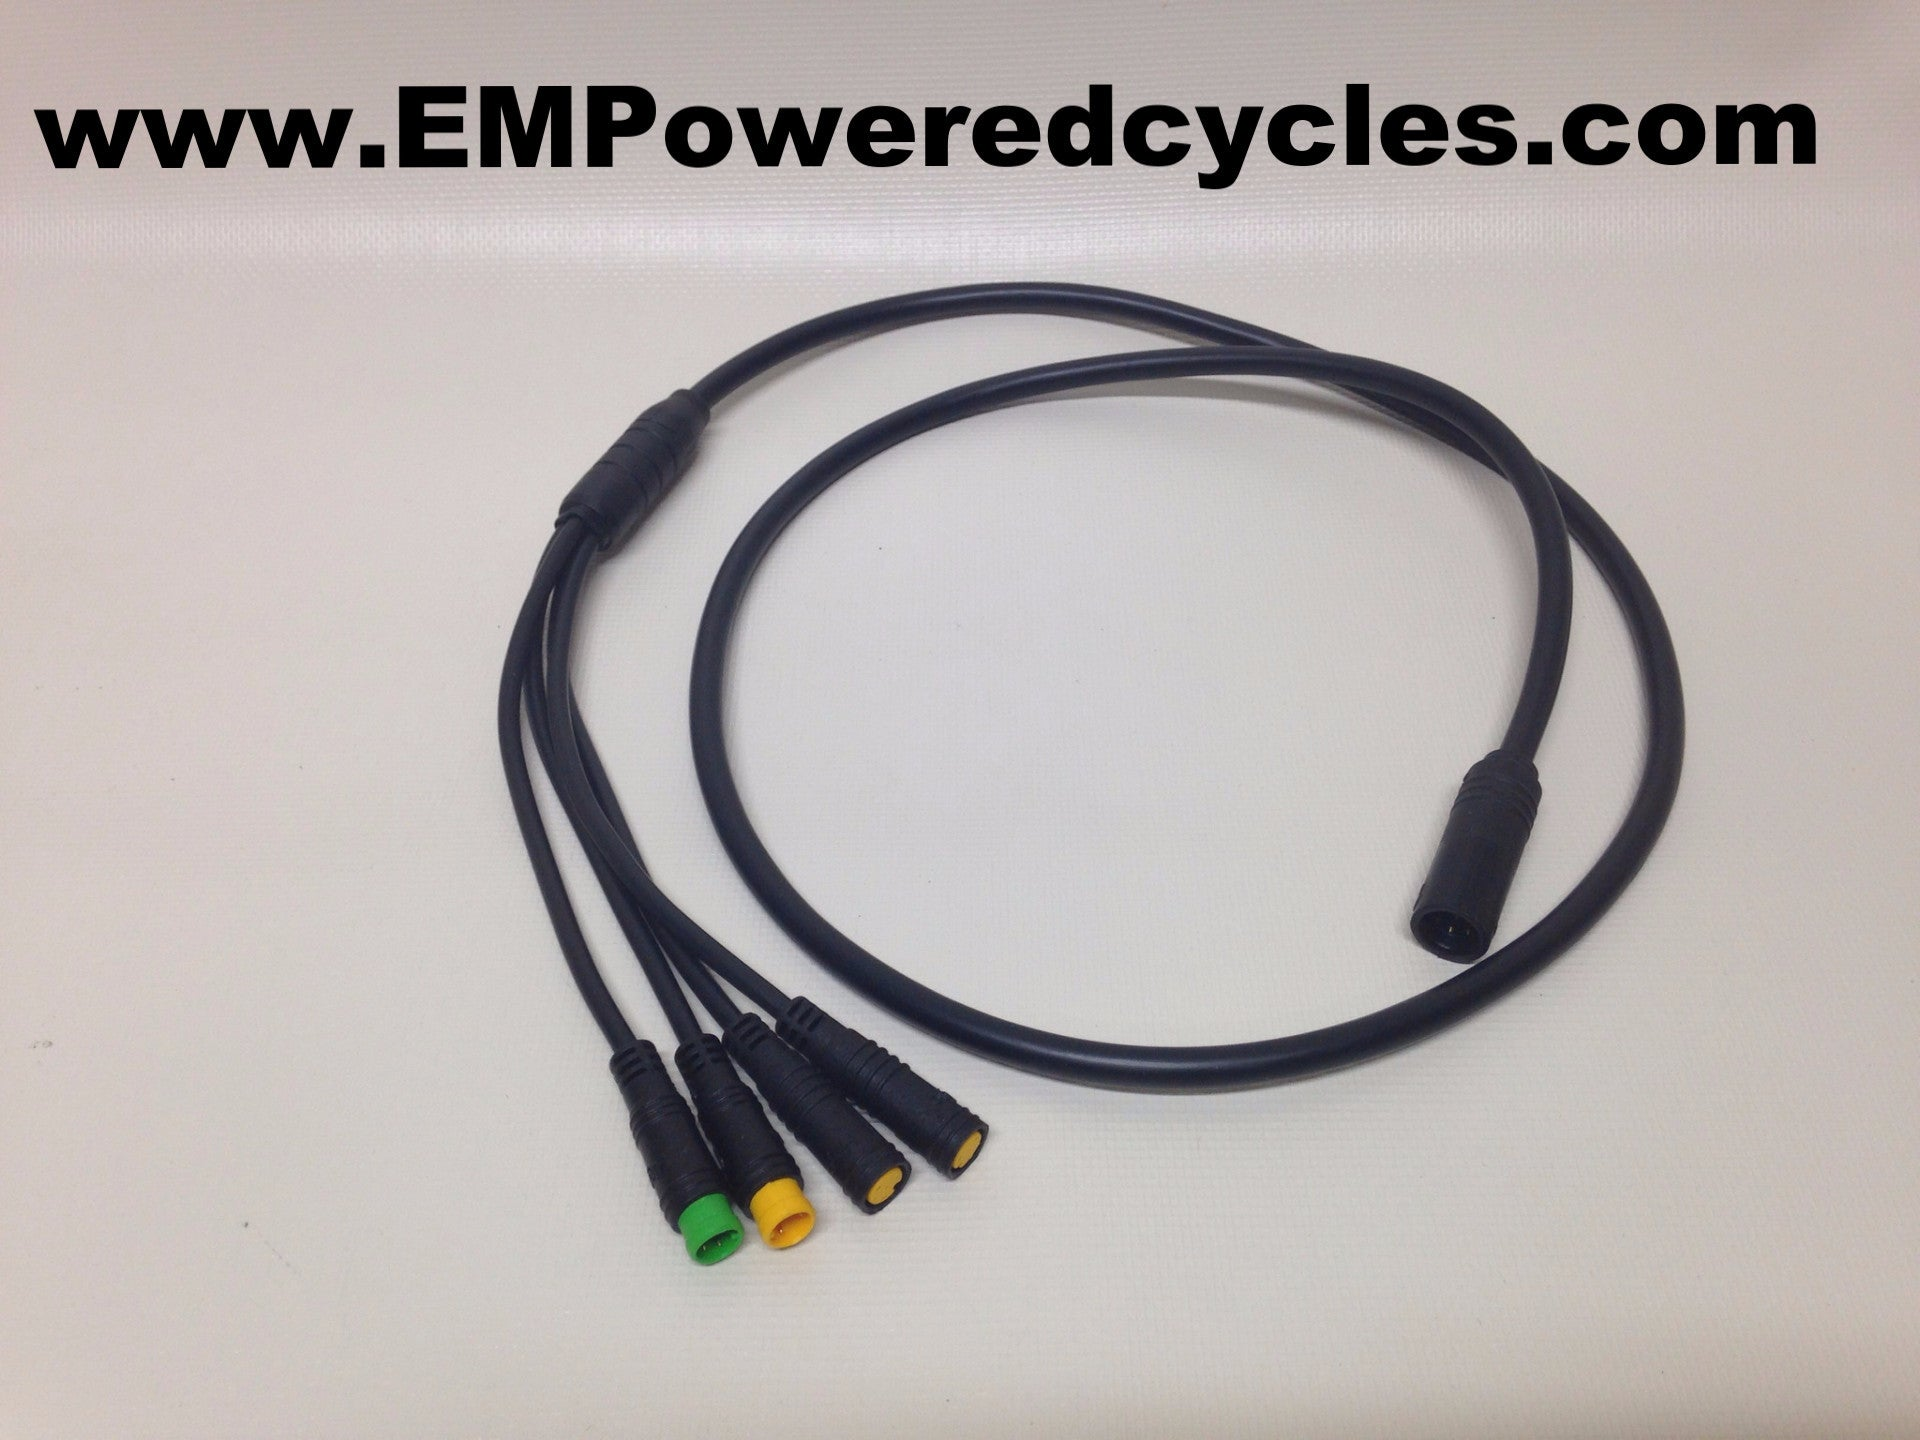 8fun Bafang BBS02 mid drive motor wiring harness | EMPowered Cycles ...